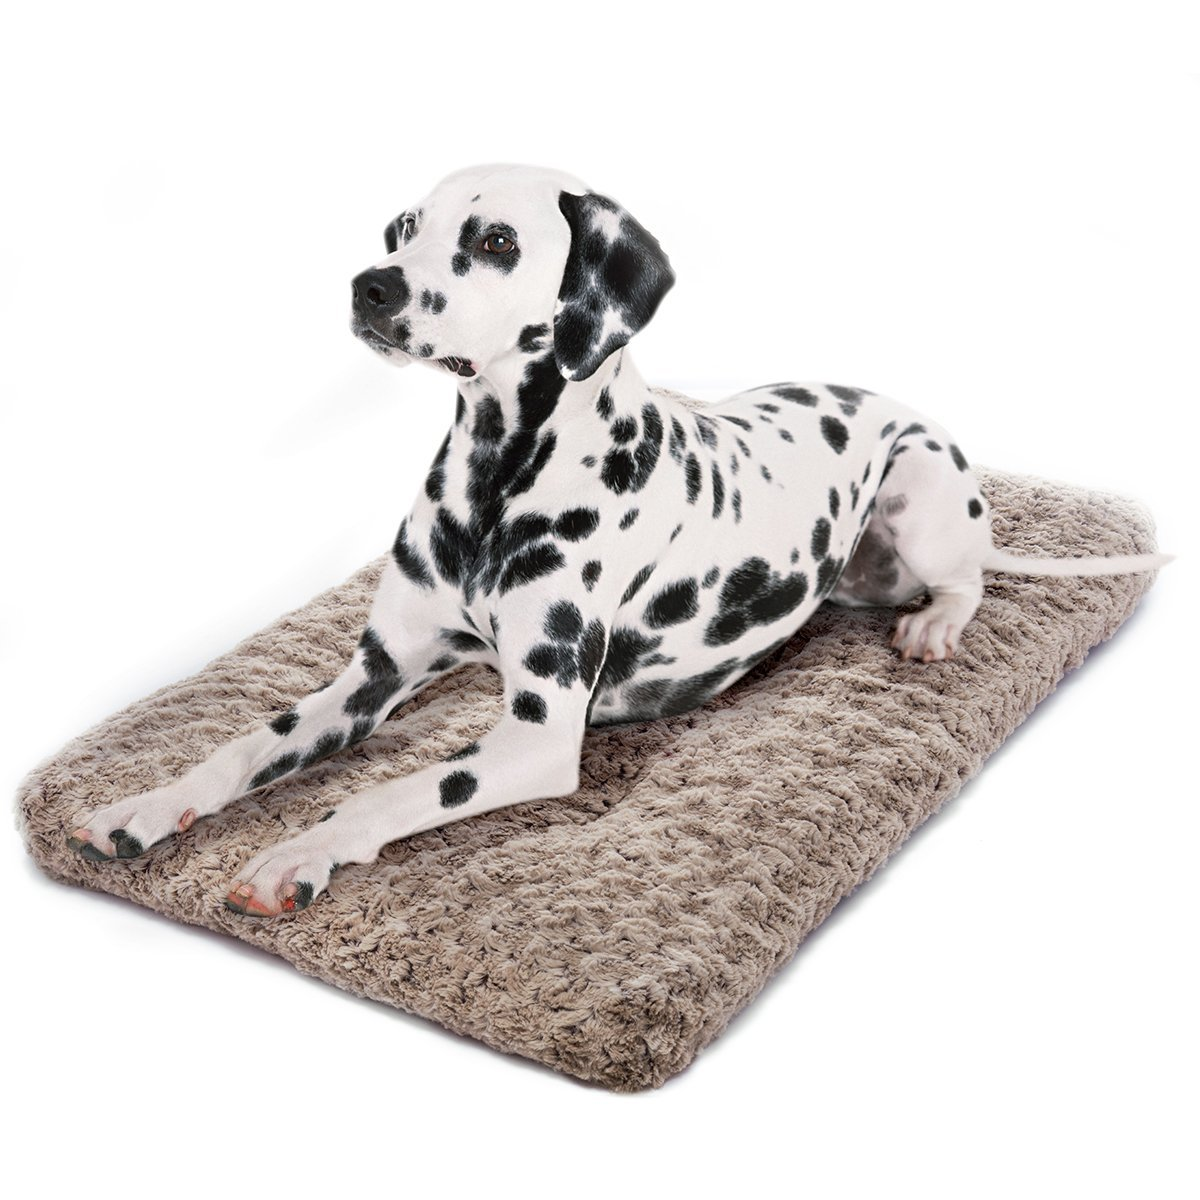 perpets Dog Bed Ultra Soft Crate Pad Home Washable Mat for Dogs and Cats Crate (42-inch, Mocha)